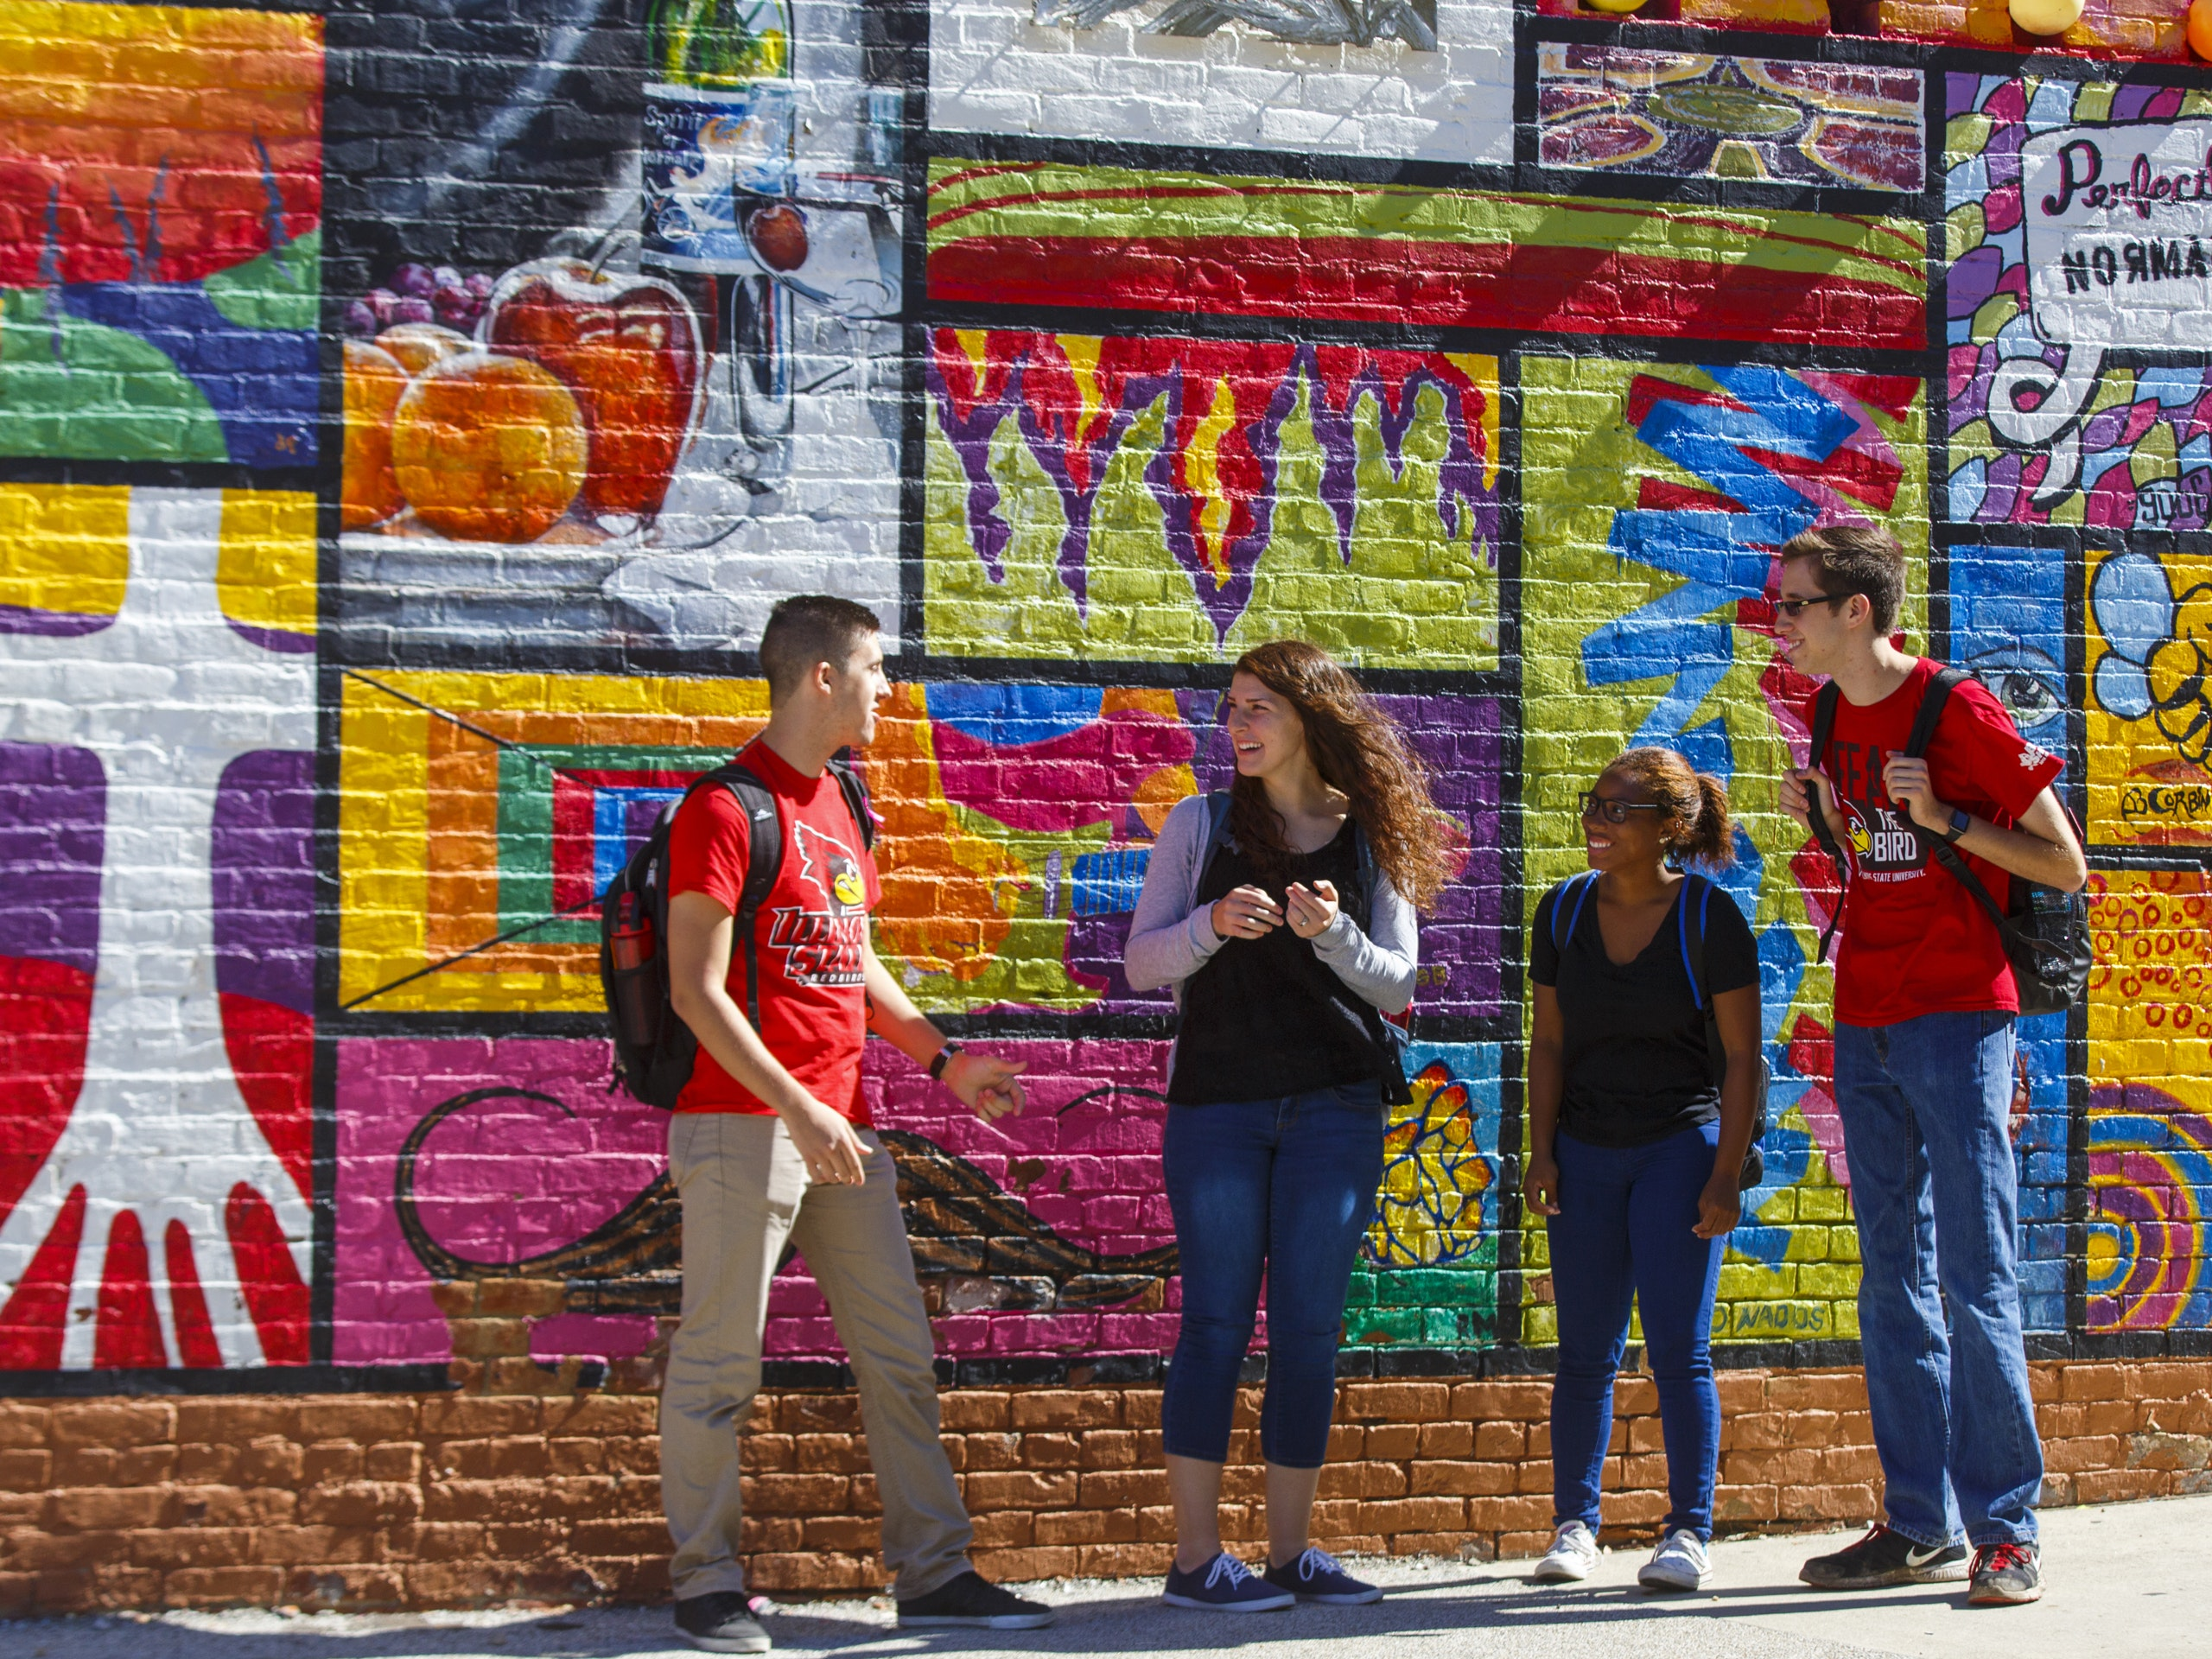 Students standing in front of a mural in Uptown Normal.